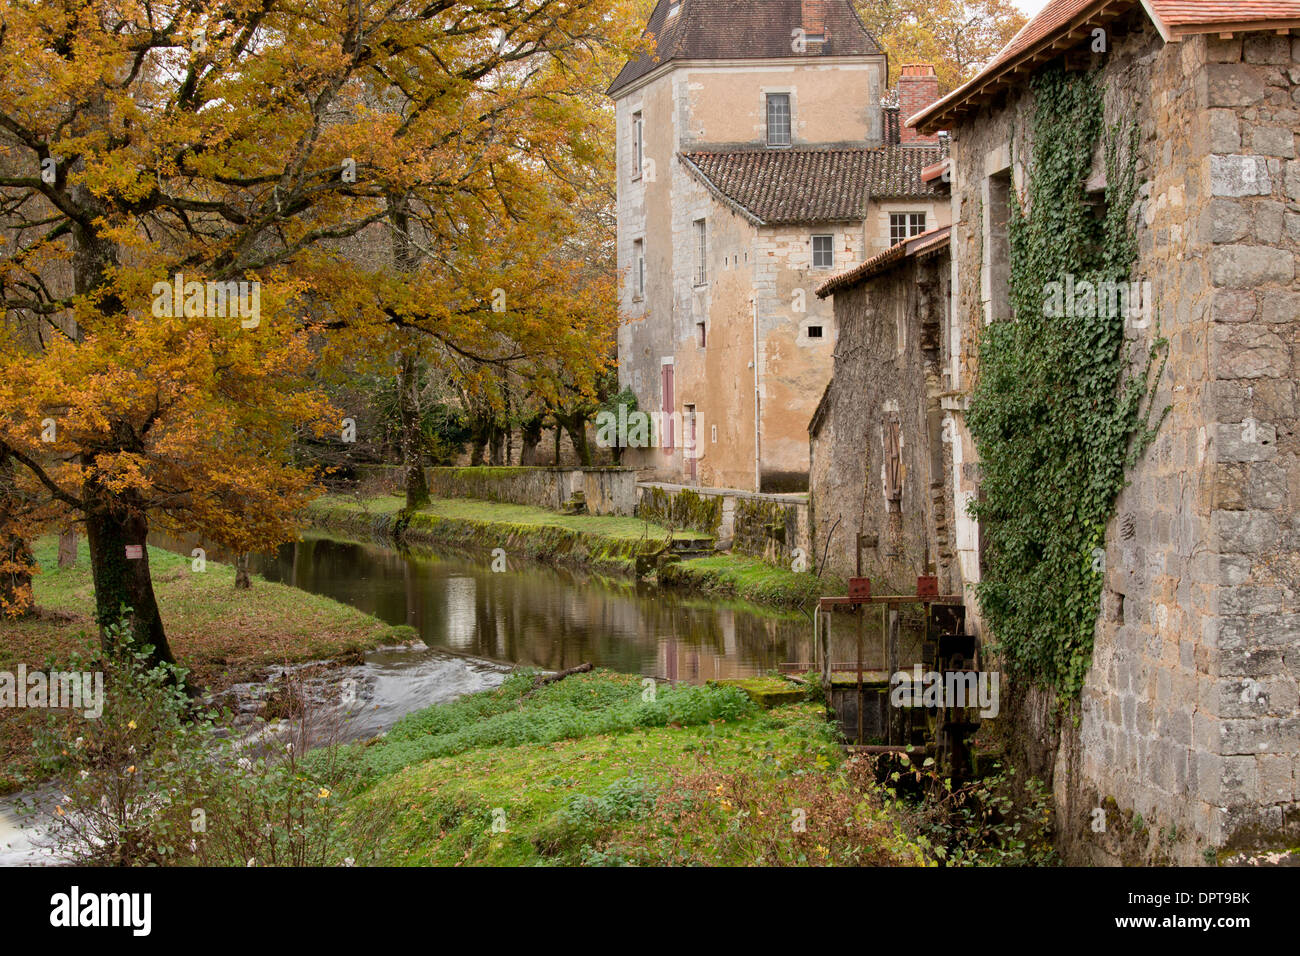 River and mill-race in the old village of St Jean de Cole, Dordogne, France. - Stock Image